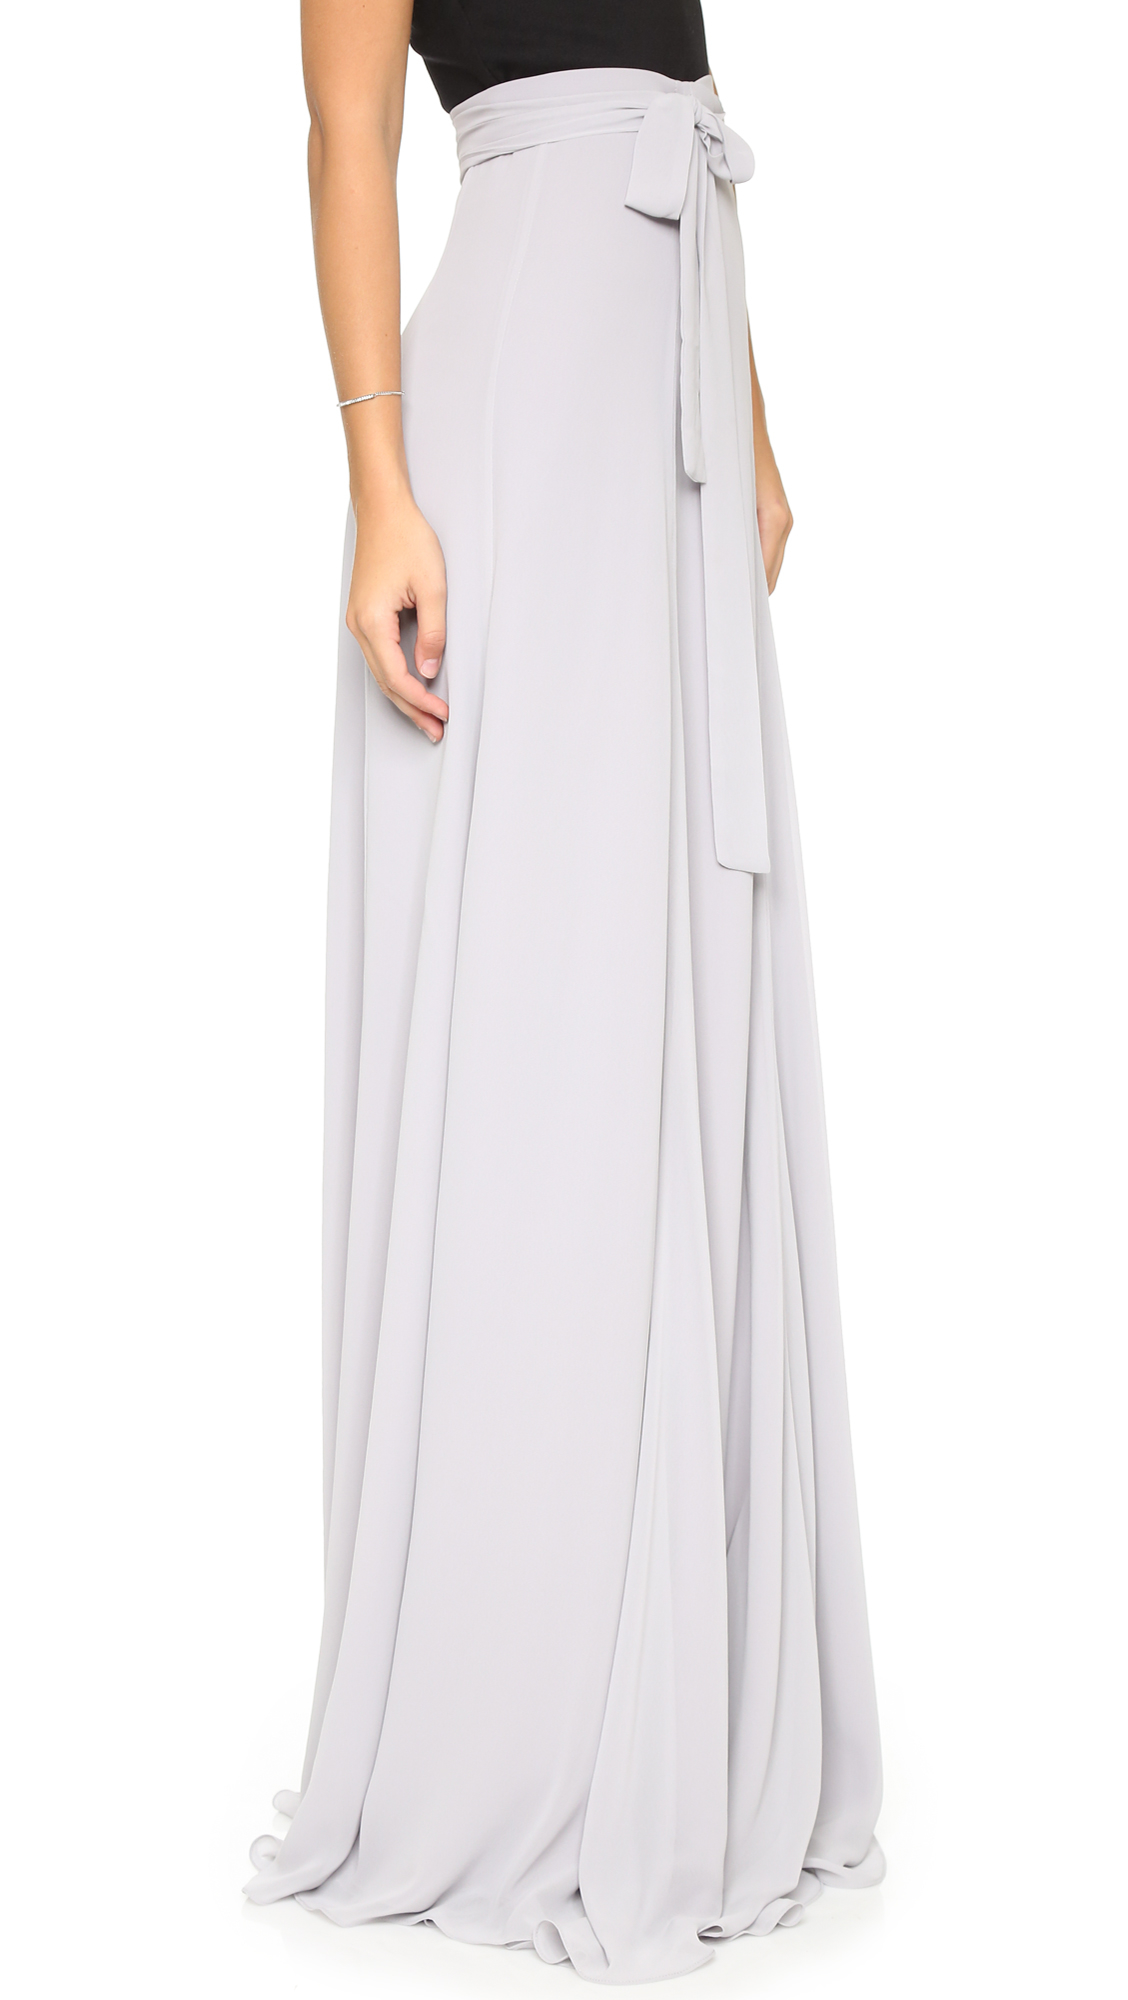 Joanna august Lilly Panel Wrap Maxi Skirt - Tiny Dancer in ...